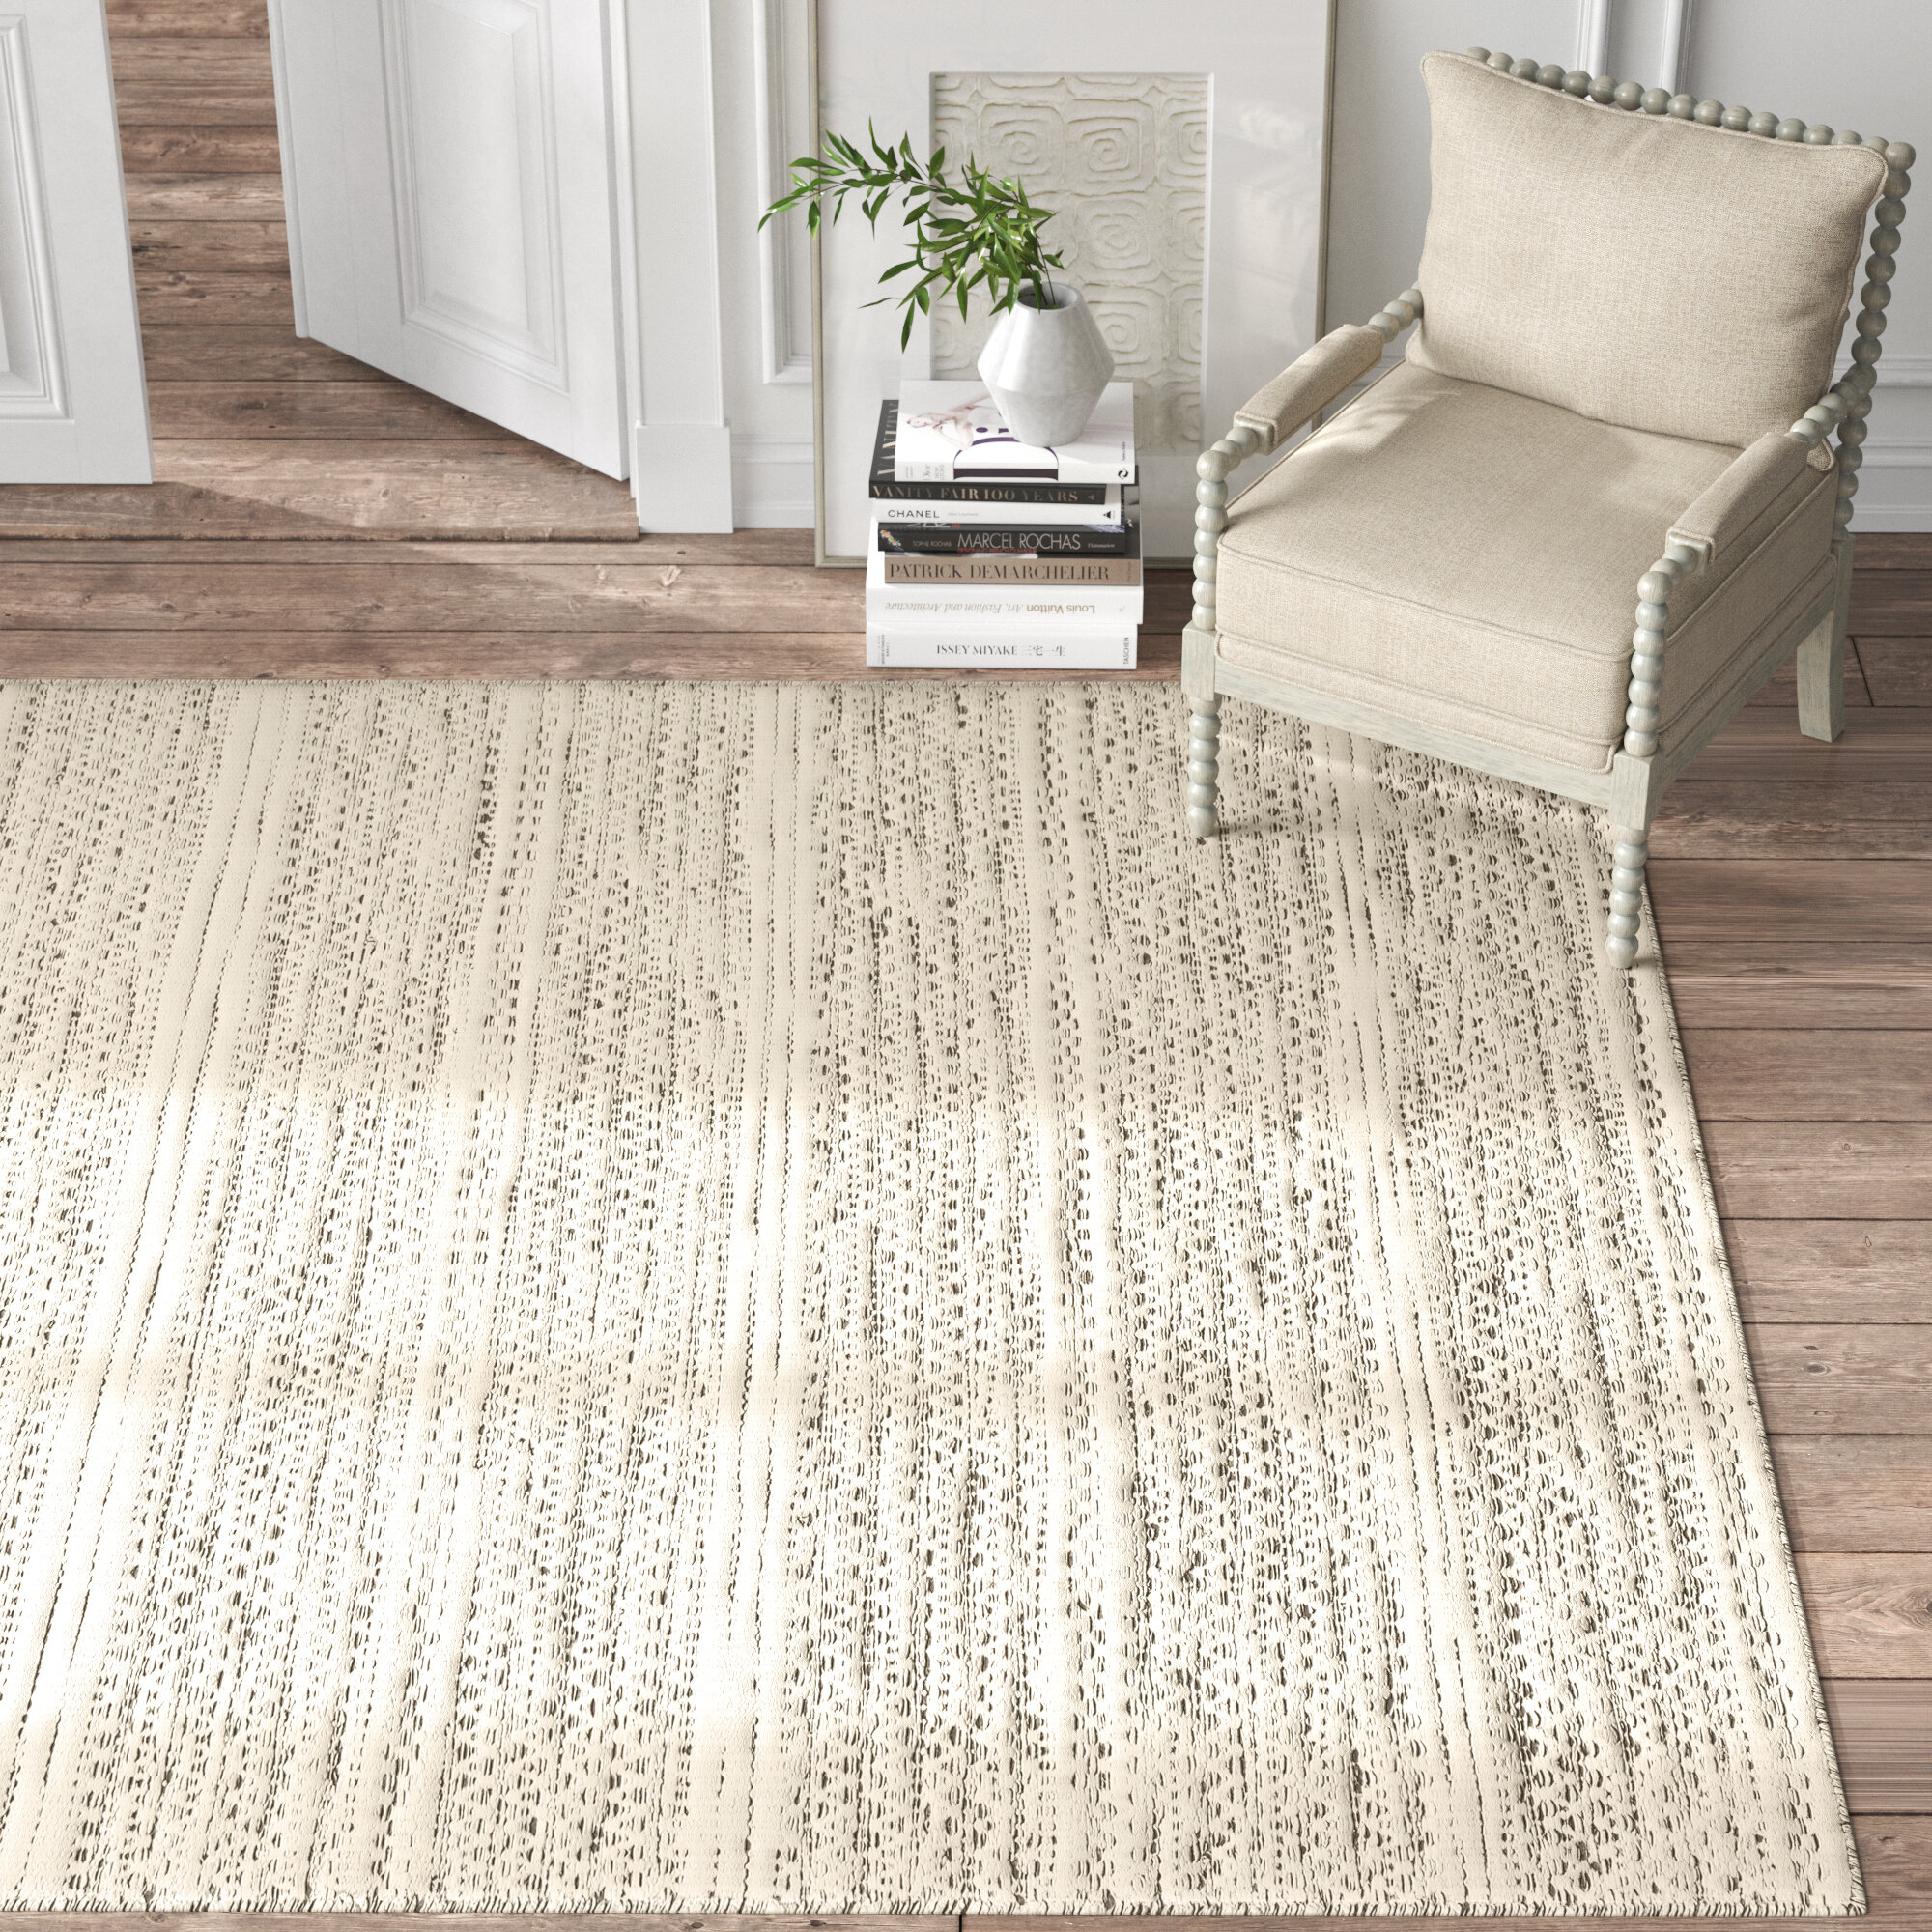 Kelly Clarkson Home Sylvie Chevron Handmade Flatweave Wool Cream Area Rug Reviews Wayfair